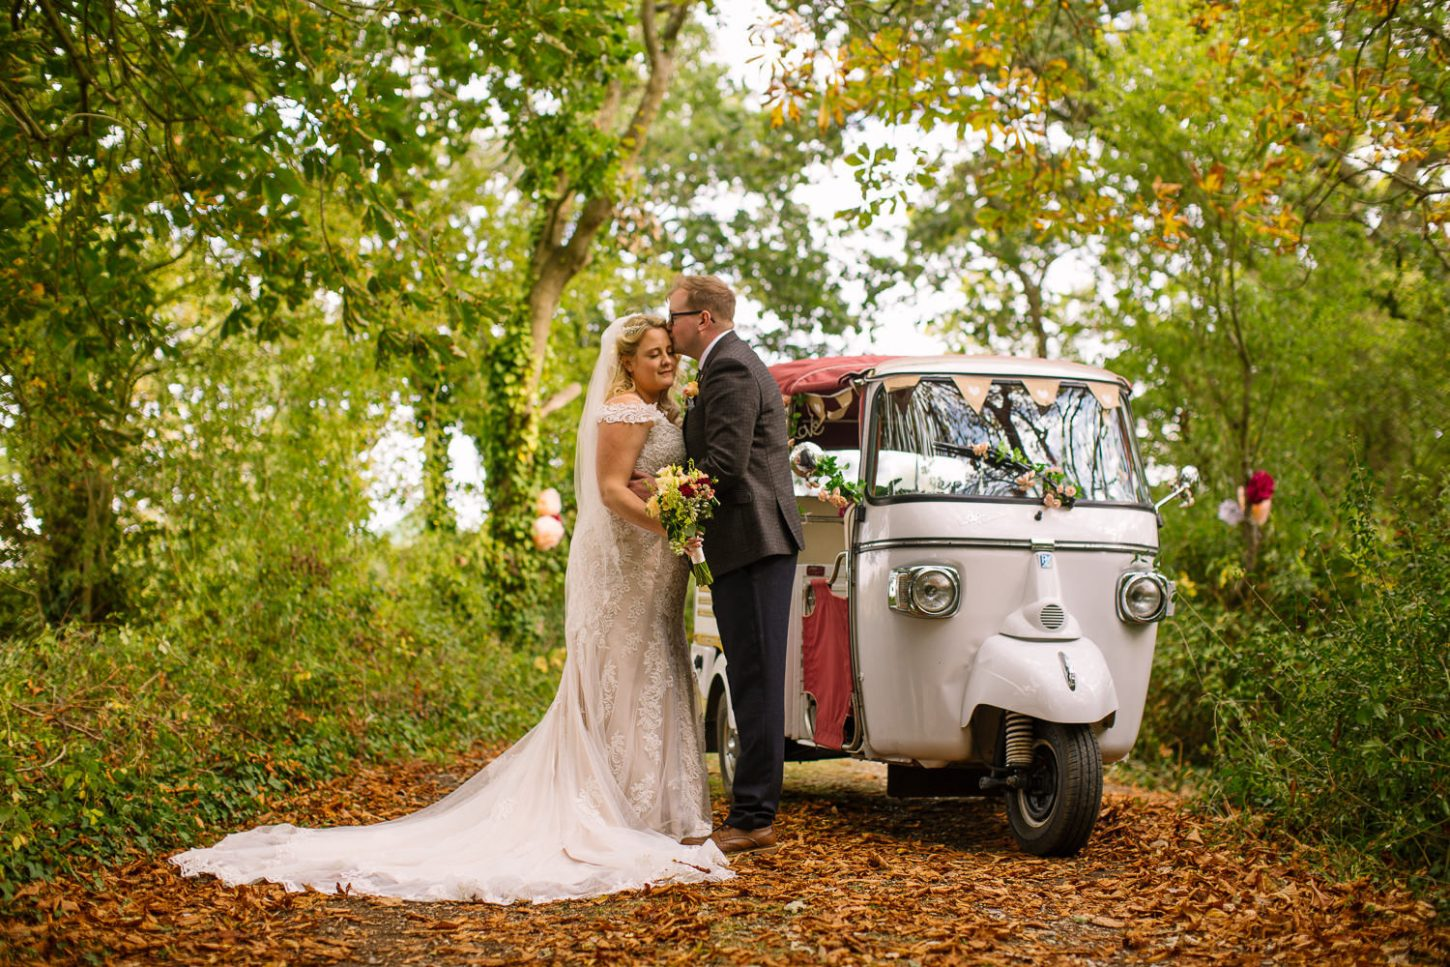 Tuk Tuk - Tournerbury Woods Wedding, Hampshire - Nisha Haq Photography